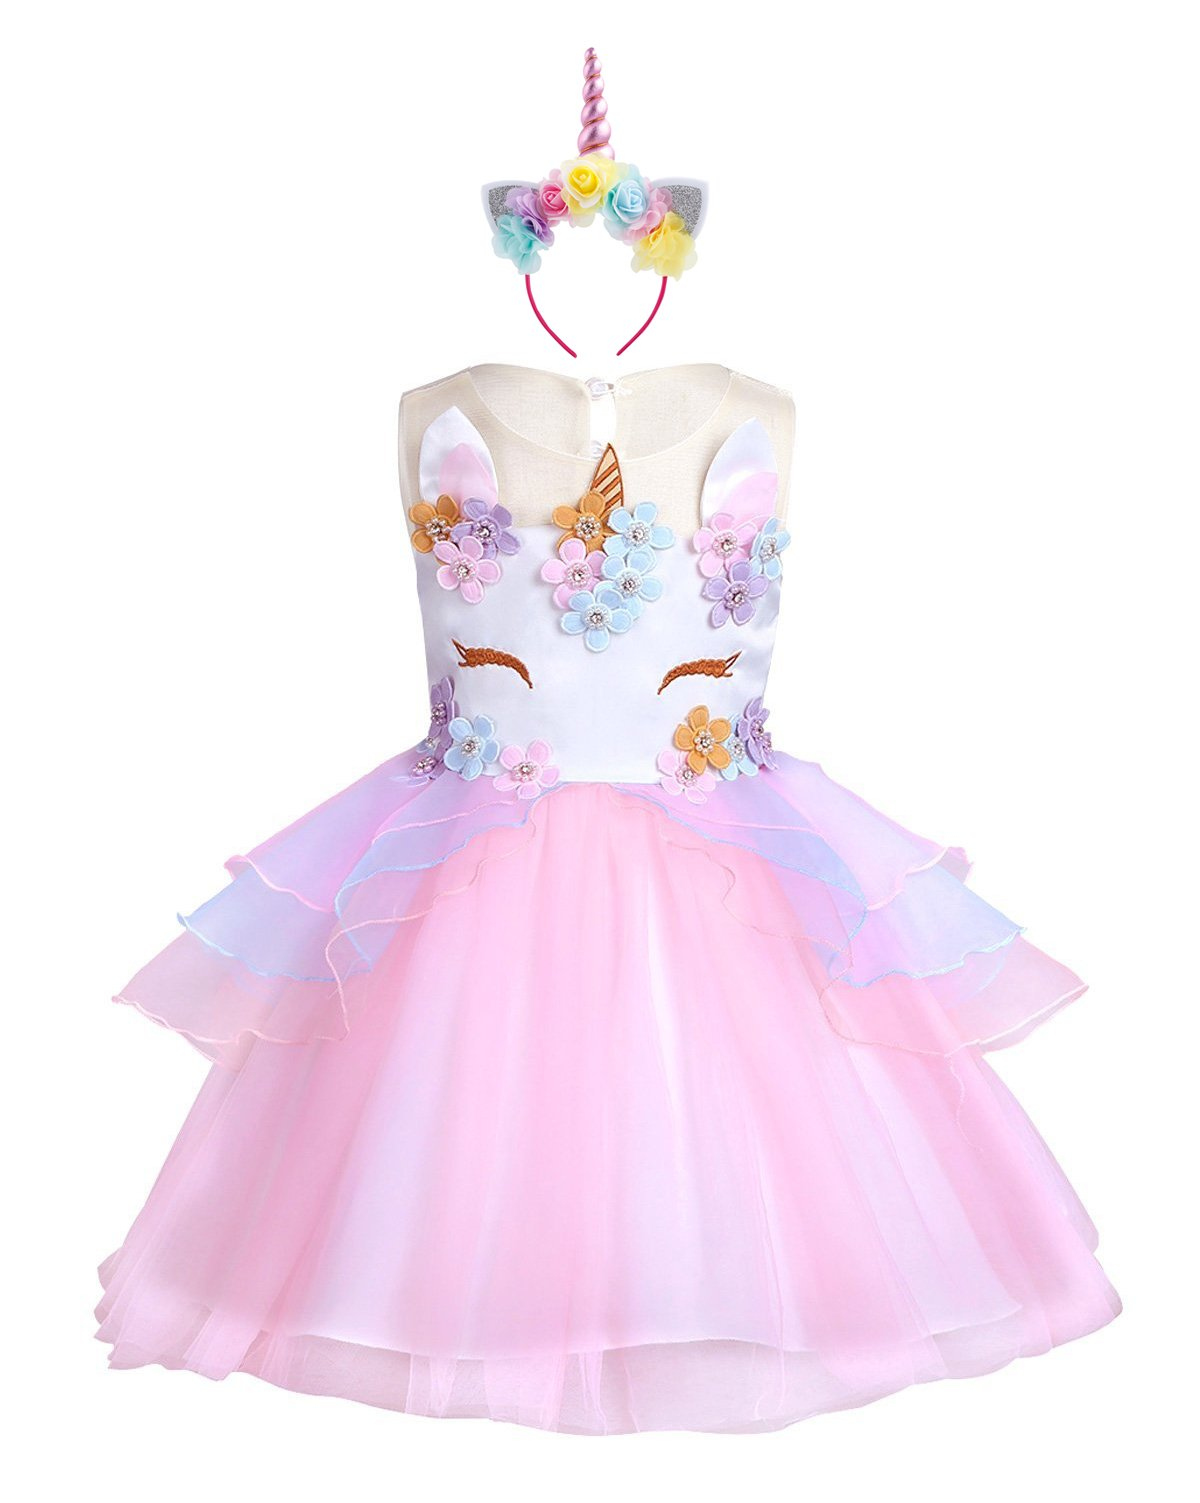 KABETY Baby Girl Unicorn Costume Pageant Flower Princess Party Dress with Headband (120cm, Pink)